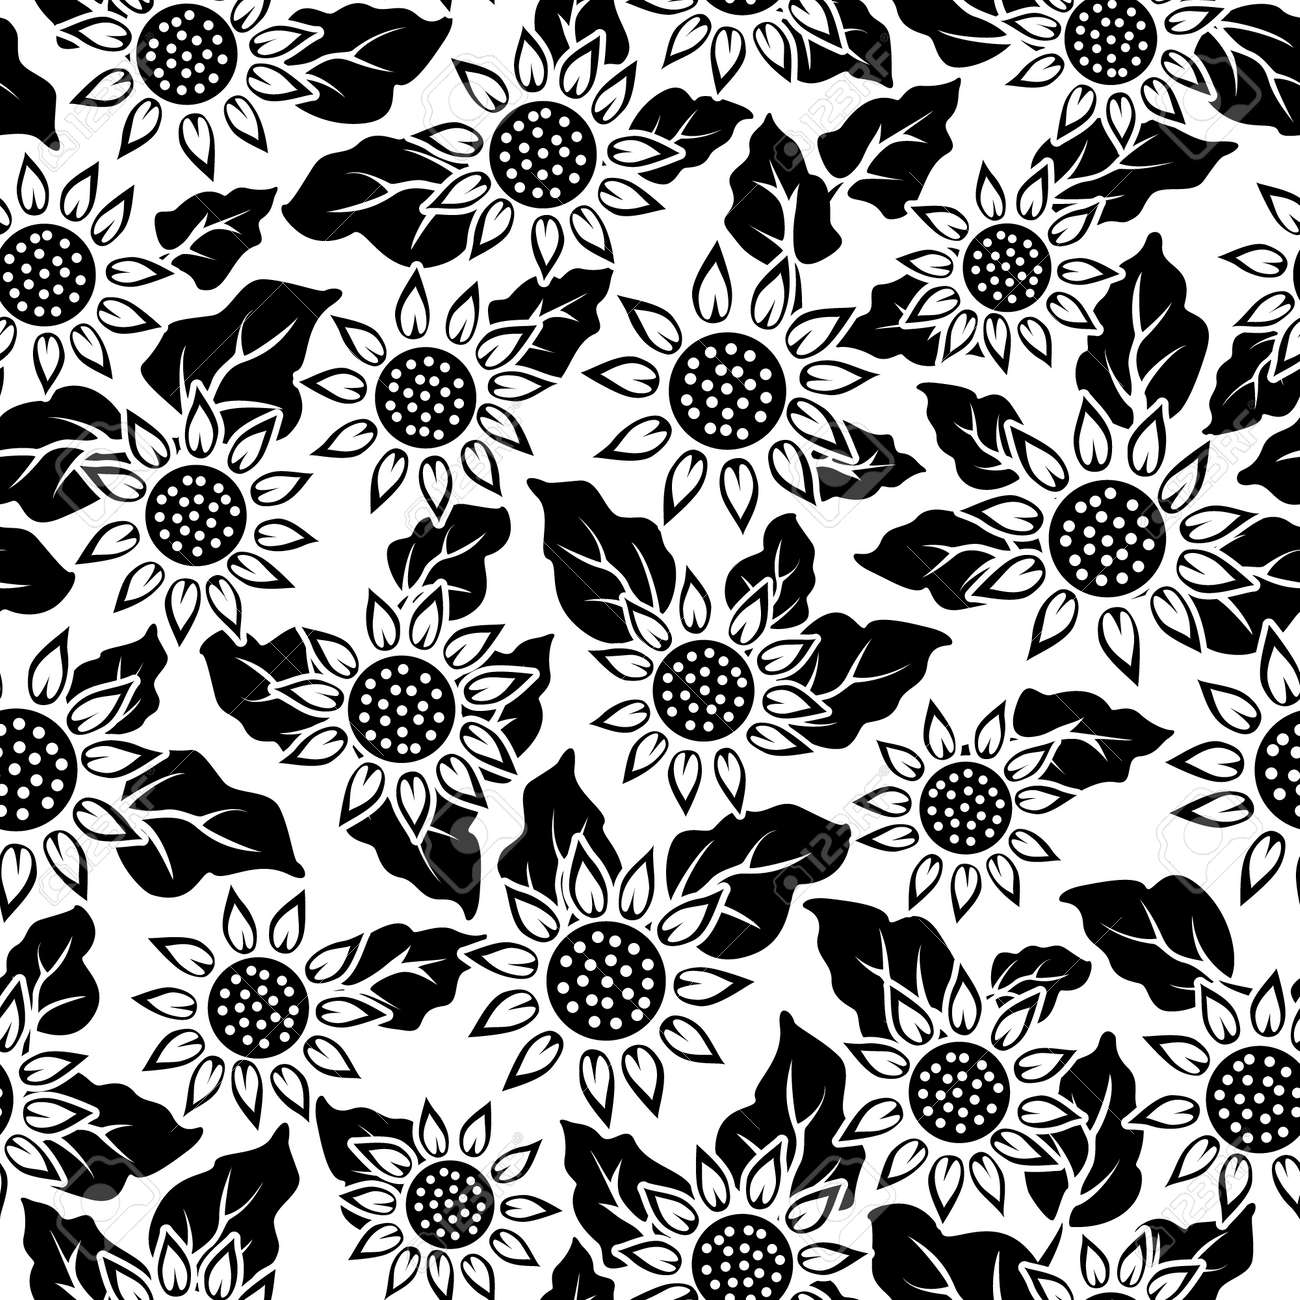 19108937 sunflower flower black isolated seamless background pattern